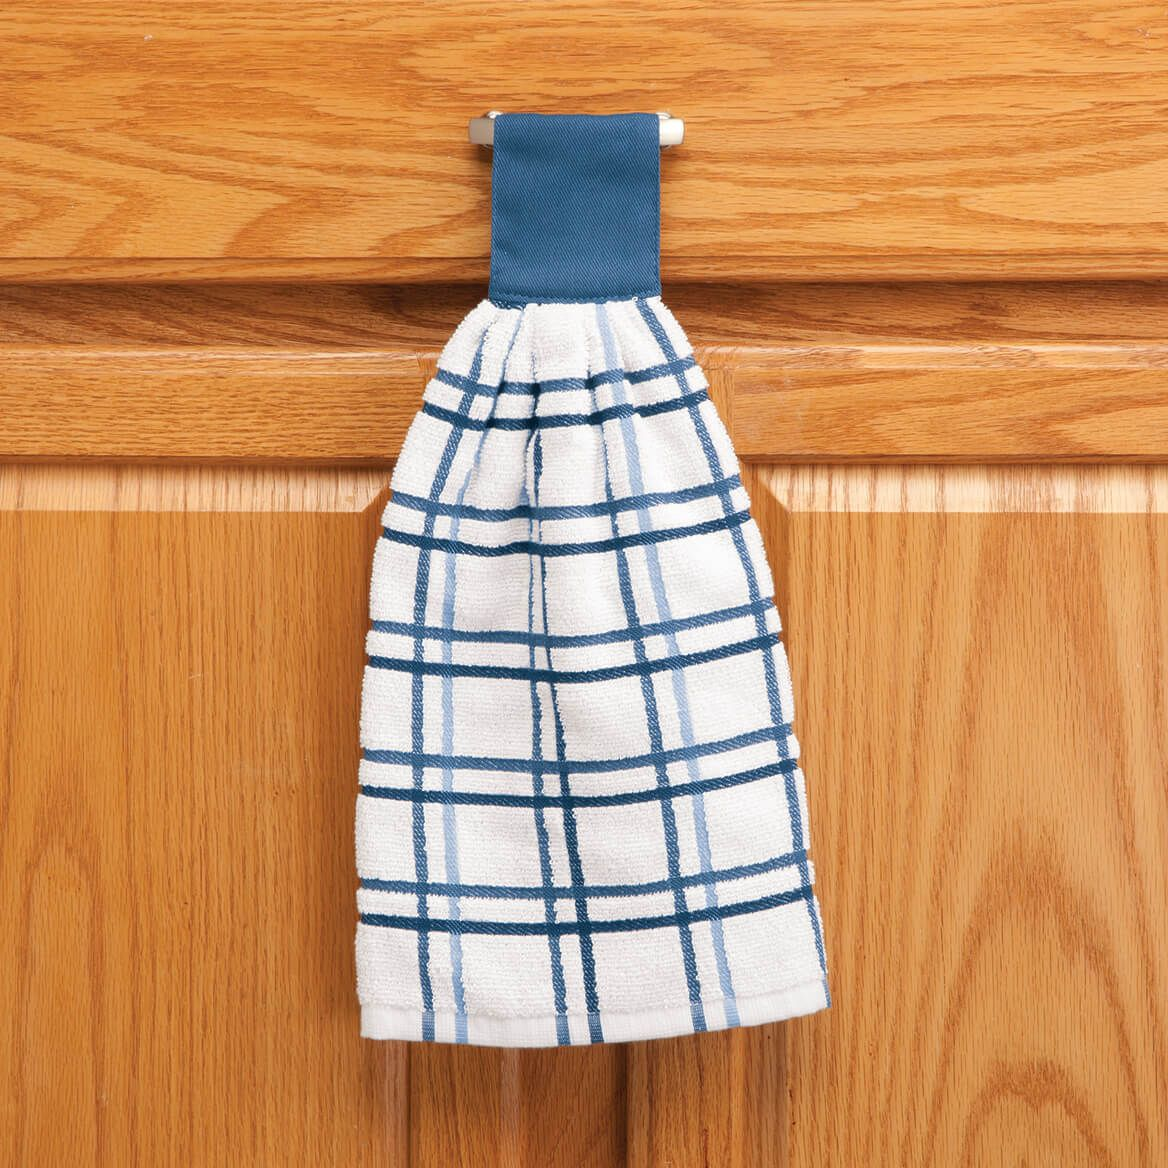 Cotton Hanging Towels - Checked-354570